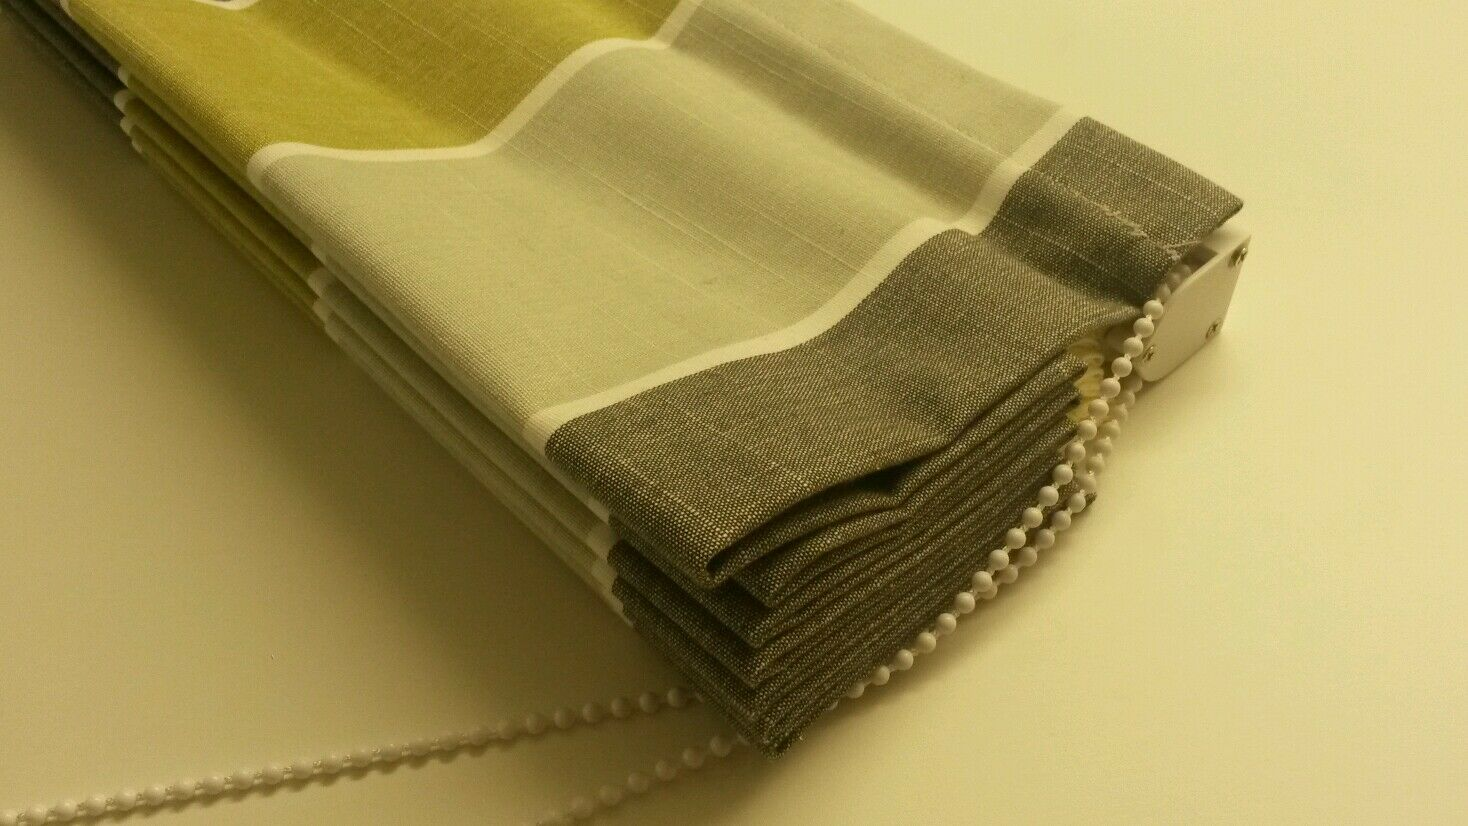 Navy Blau fabric for Made to Measure Roman Blind Blind Blind made up to 120cm x 130cm drop ff8e8a